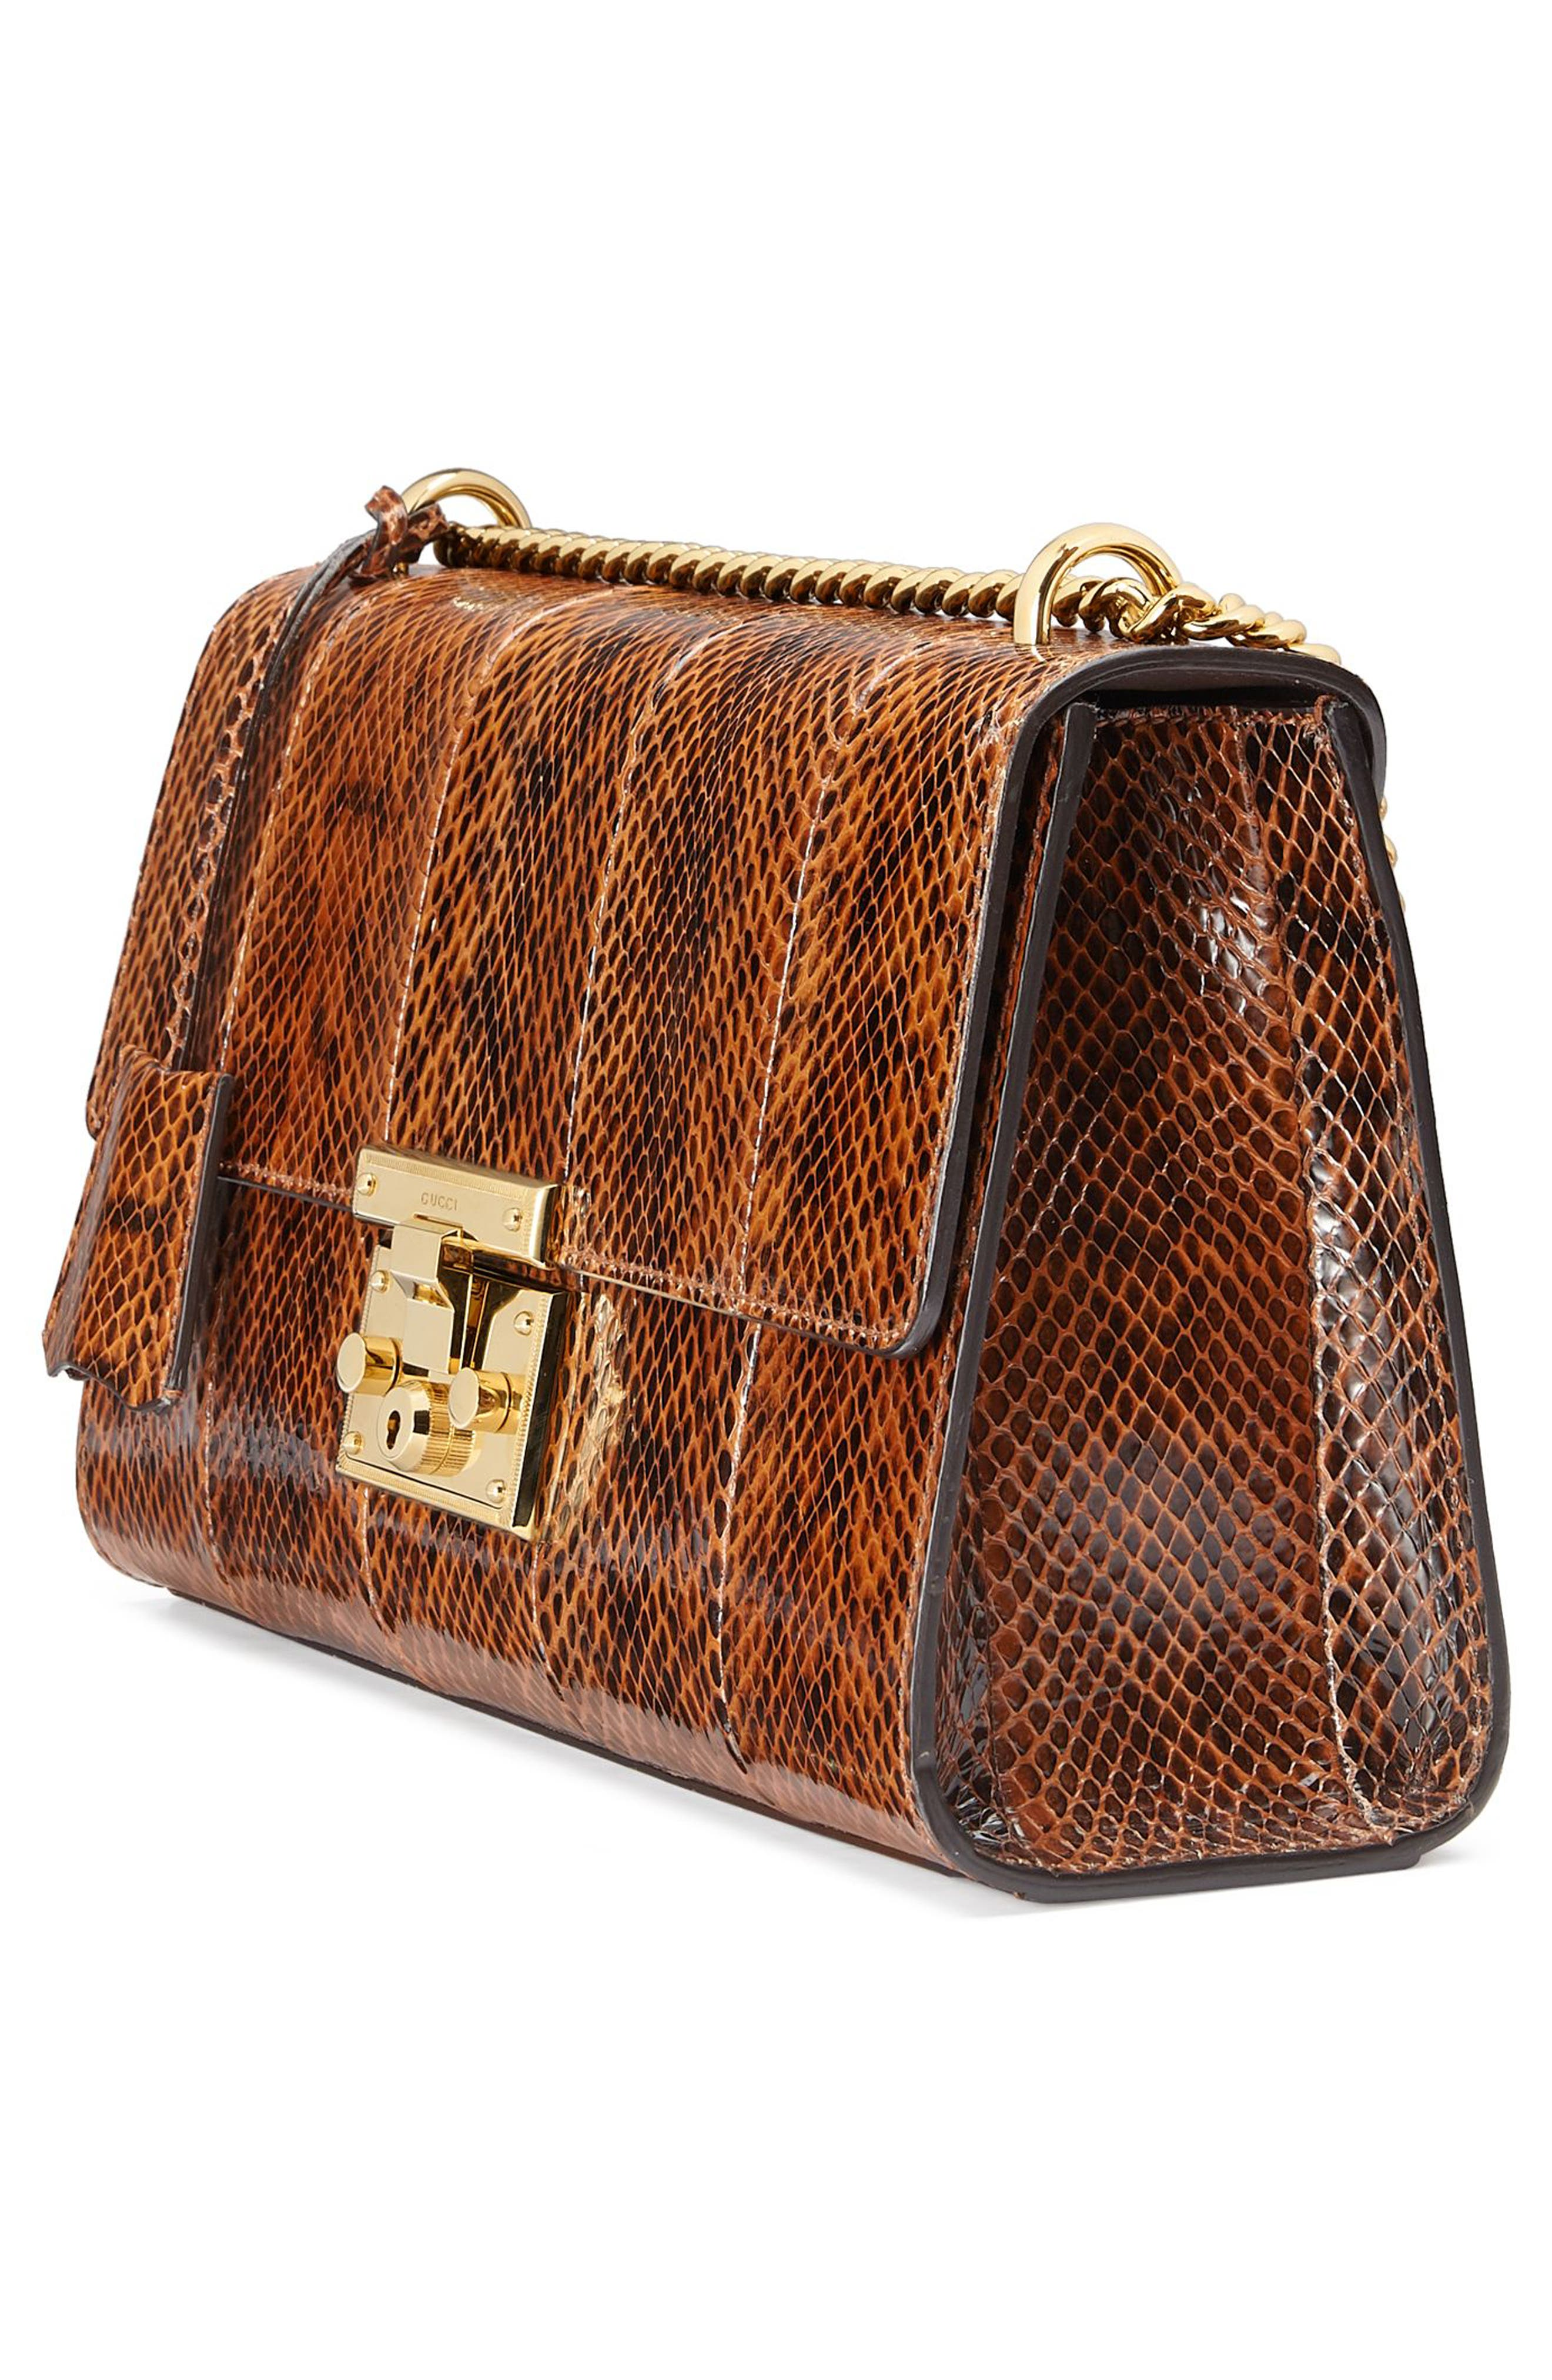 Medium Padlock - Elaphe Genuine Snakeskin Shoulder Bag,                             Alternate thumbnail 4, color,                             BRIGHT CUIR